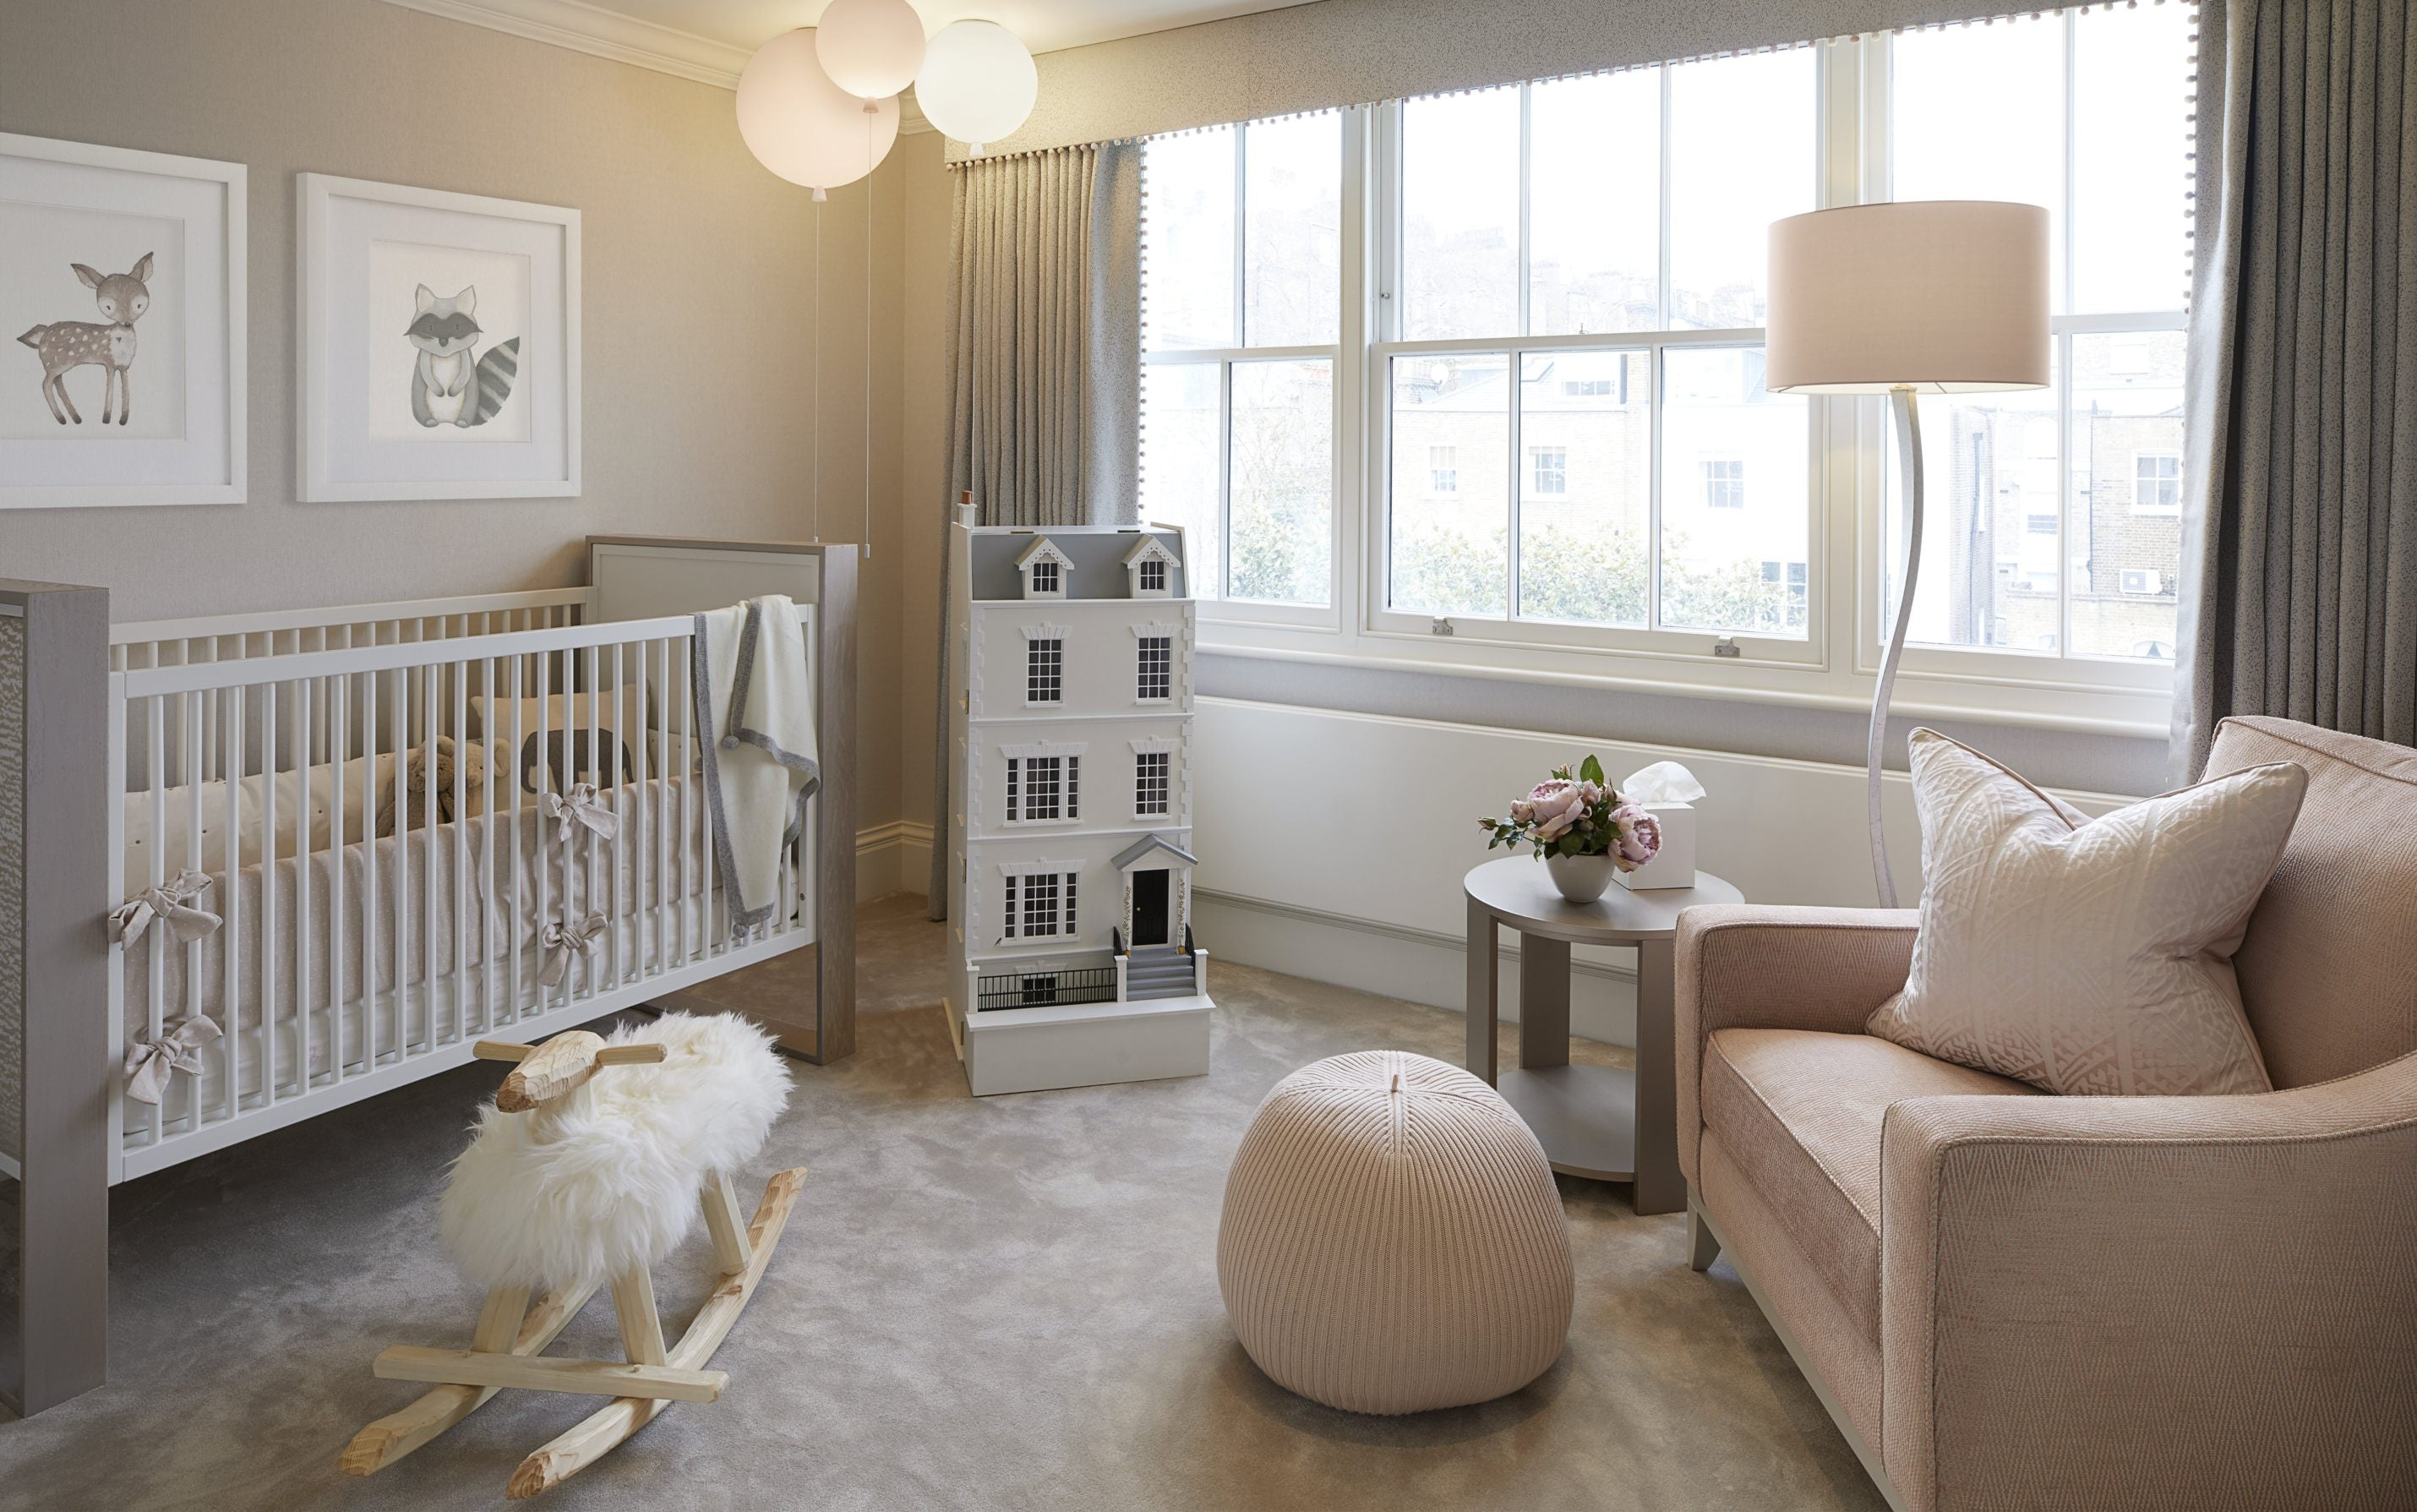 Baby Room Ideas  How To Decorate Your Nursery  LuxDeco.com